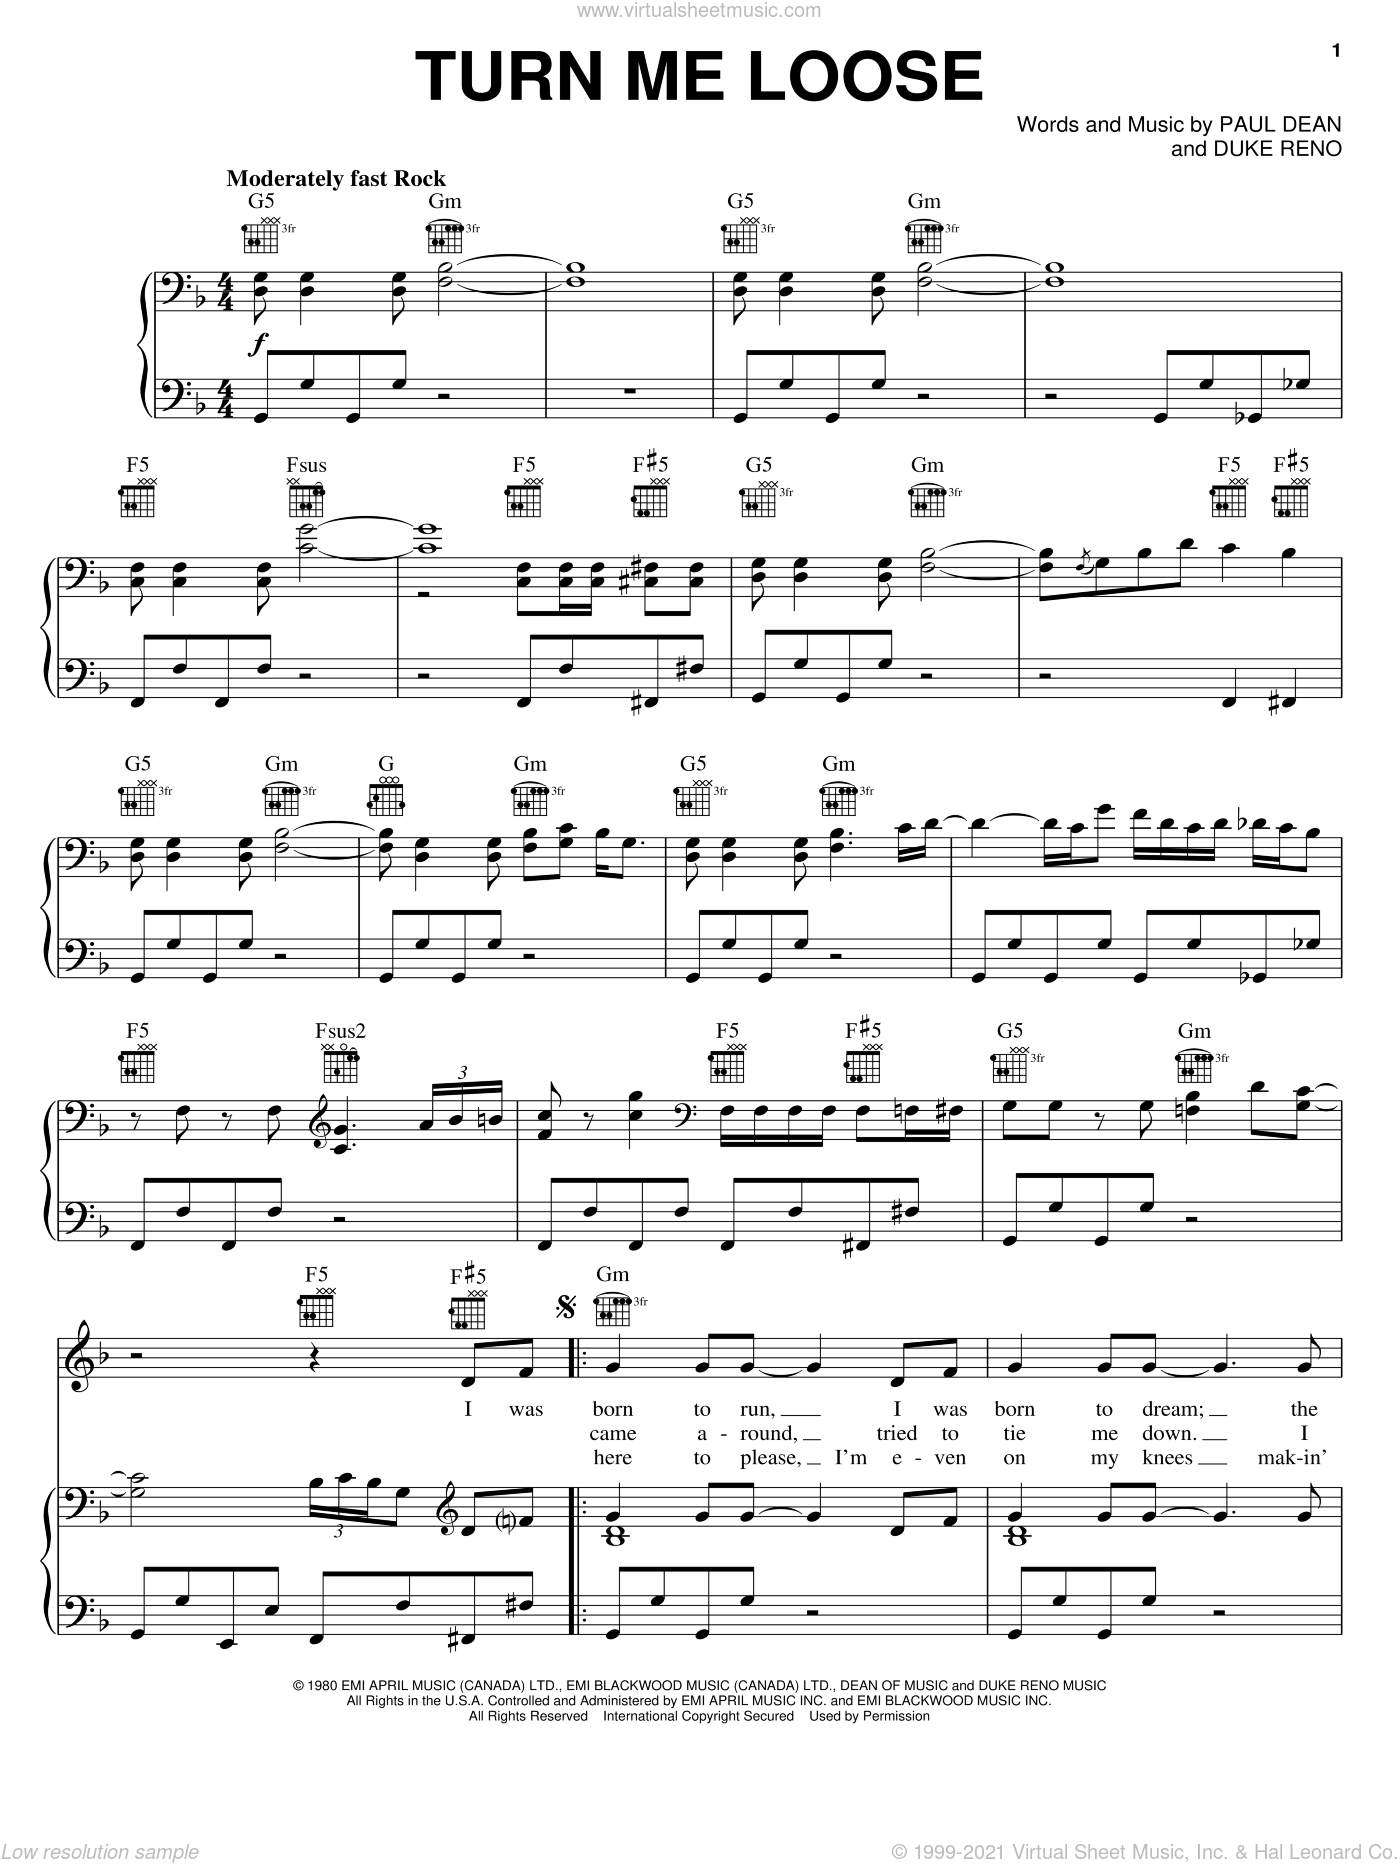 Turn Me Loose sheet music for voice, piano or guitar by Loverboy, Duke Reno and Paul Dean, intermediate skill level